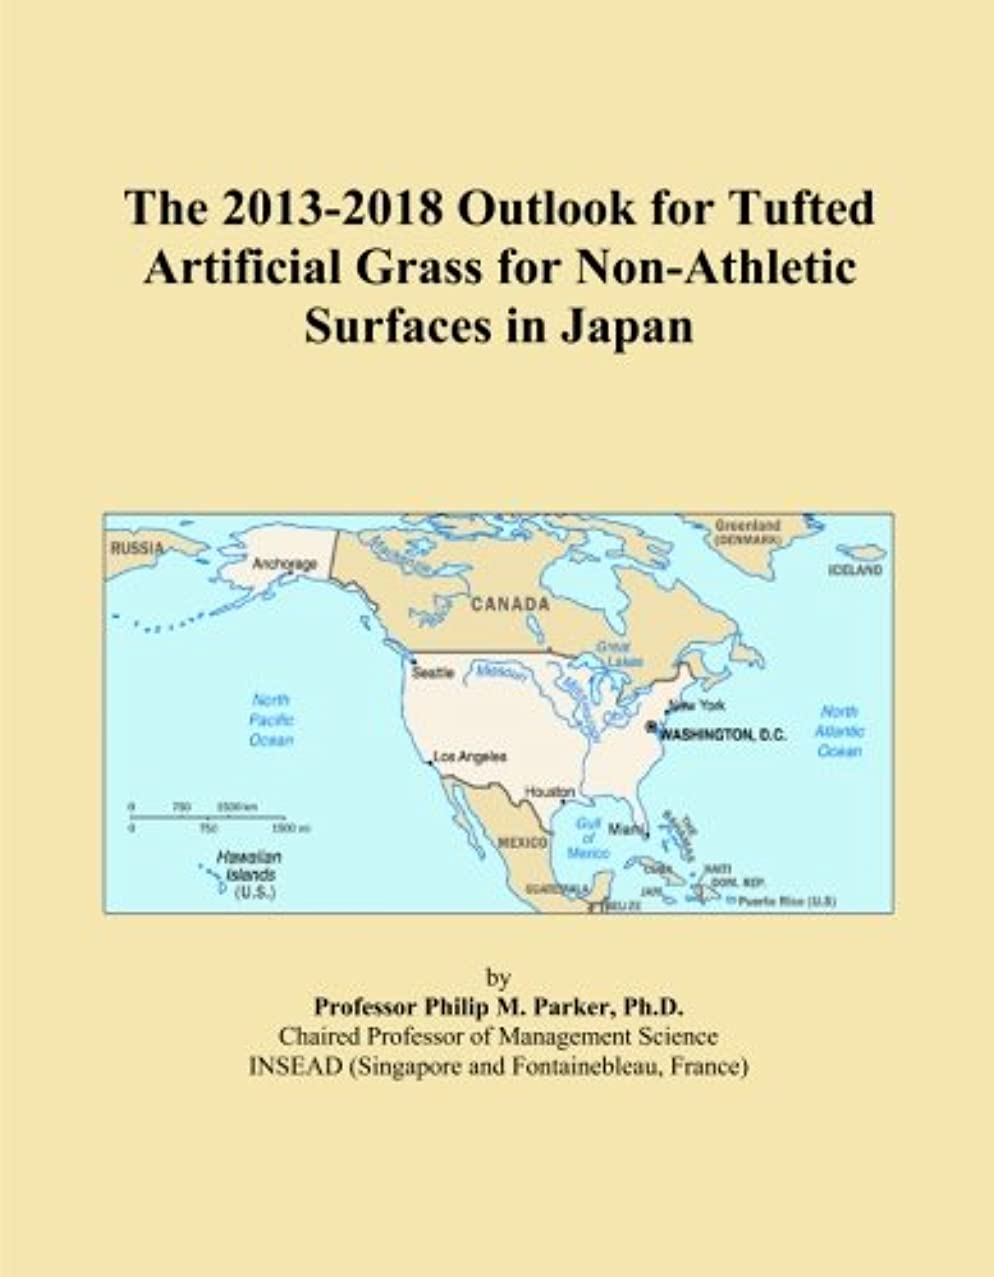 The 2013-2018 Outlook for Tufted Artificial Grass for Non-Athletic Surfaces in Japan